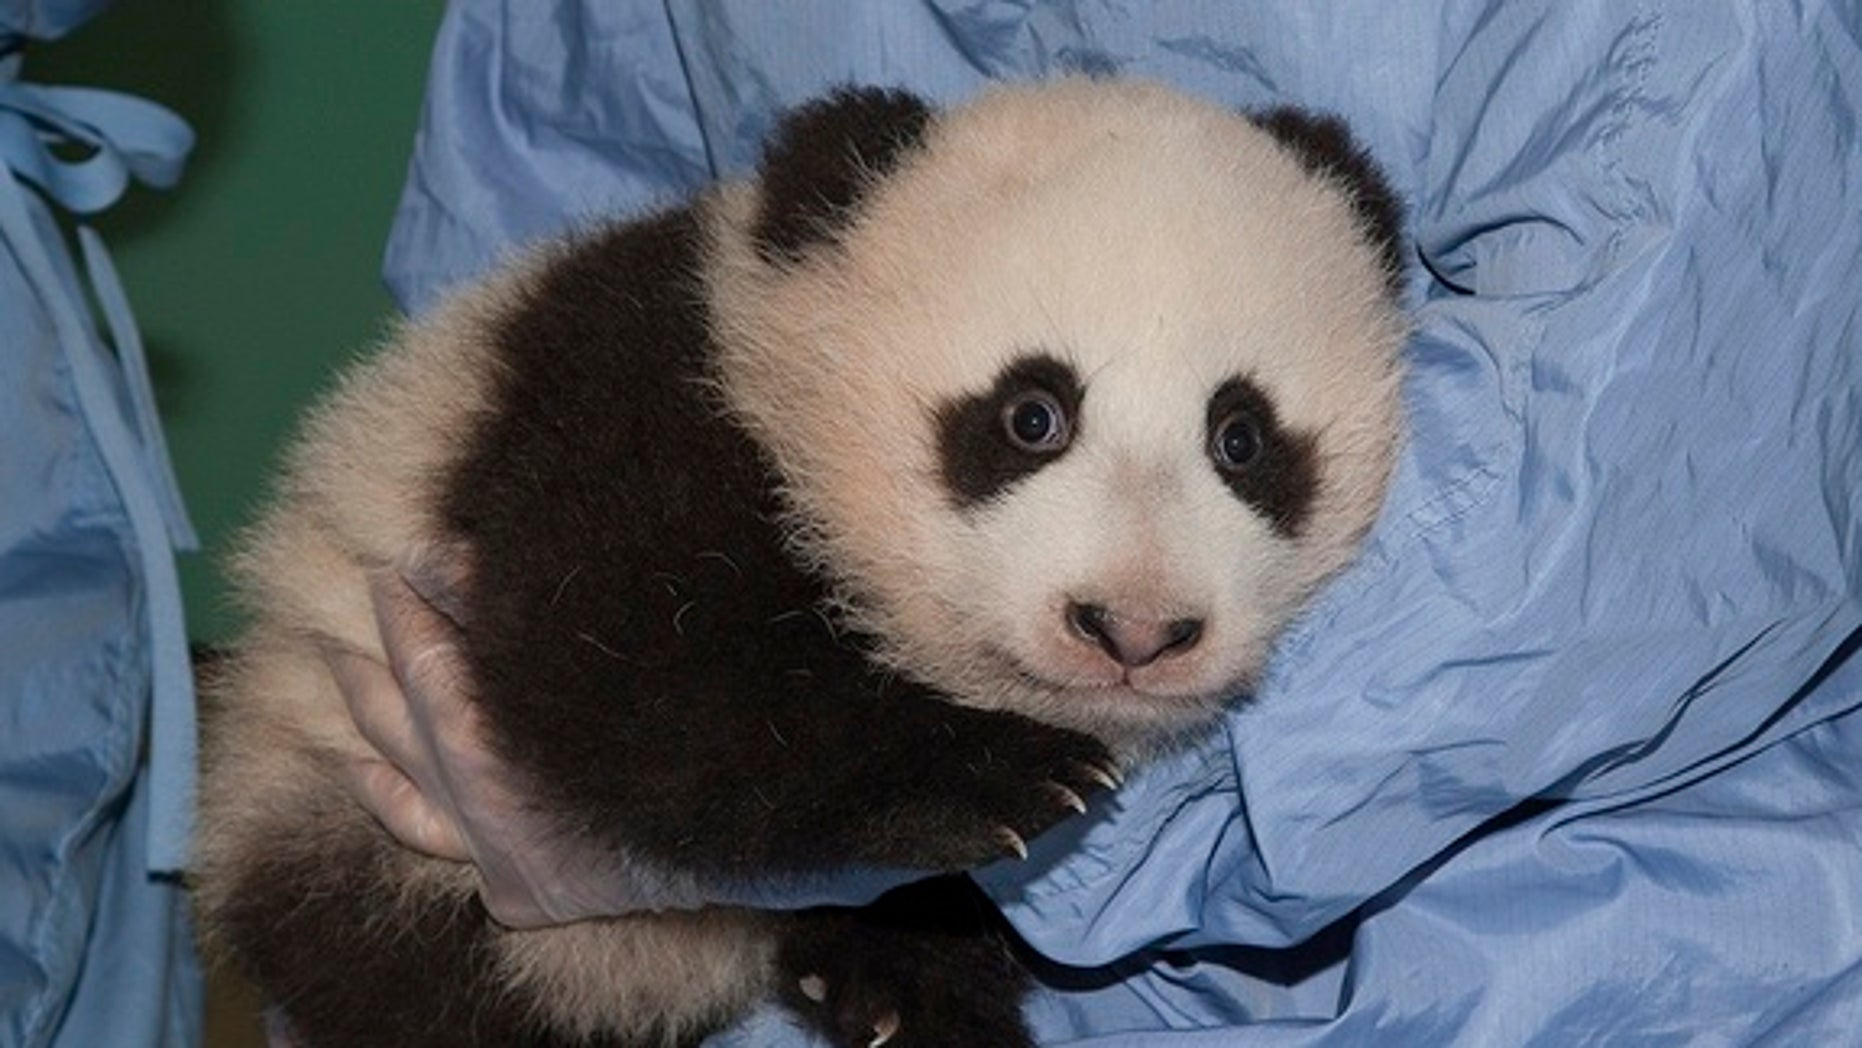 Newly named Xiao Liwu gets his 13th checkup.